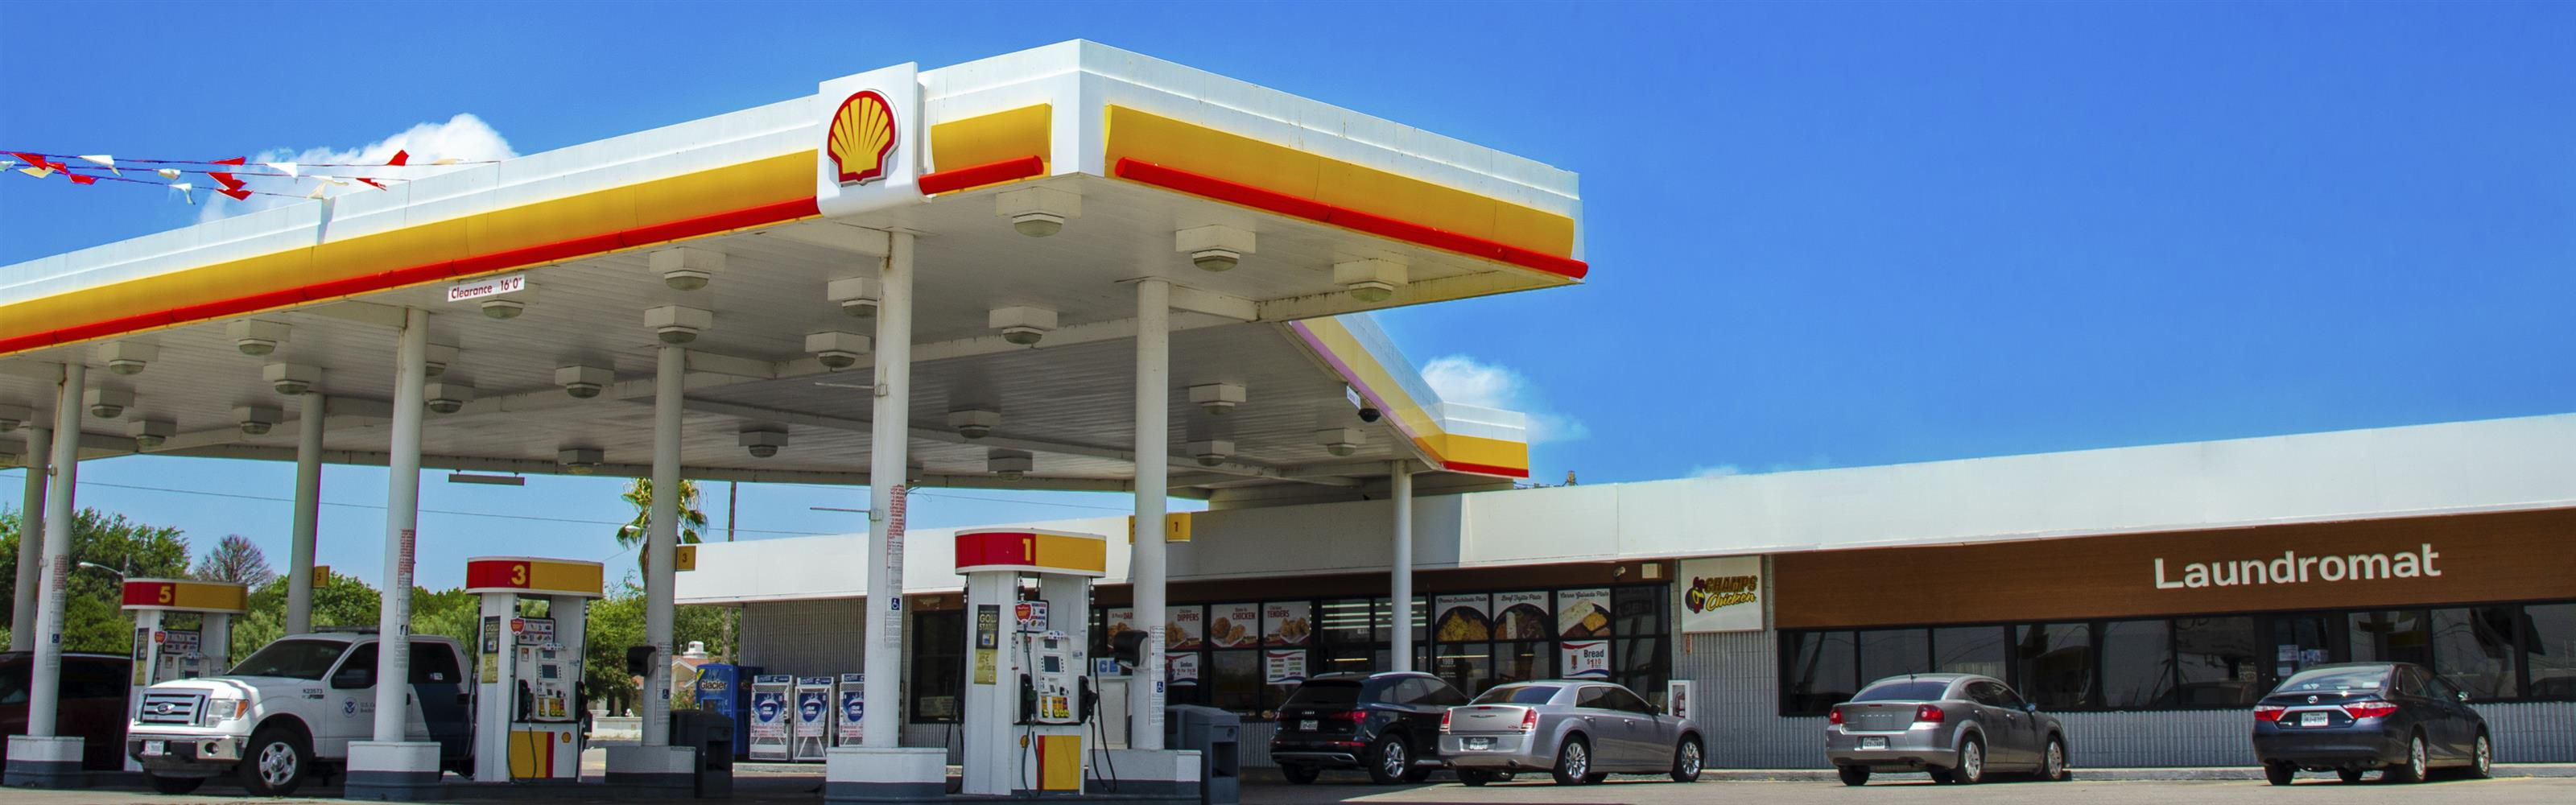 shell gas station in front of the laundromat